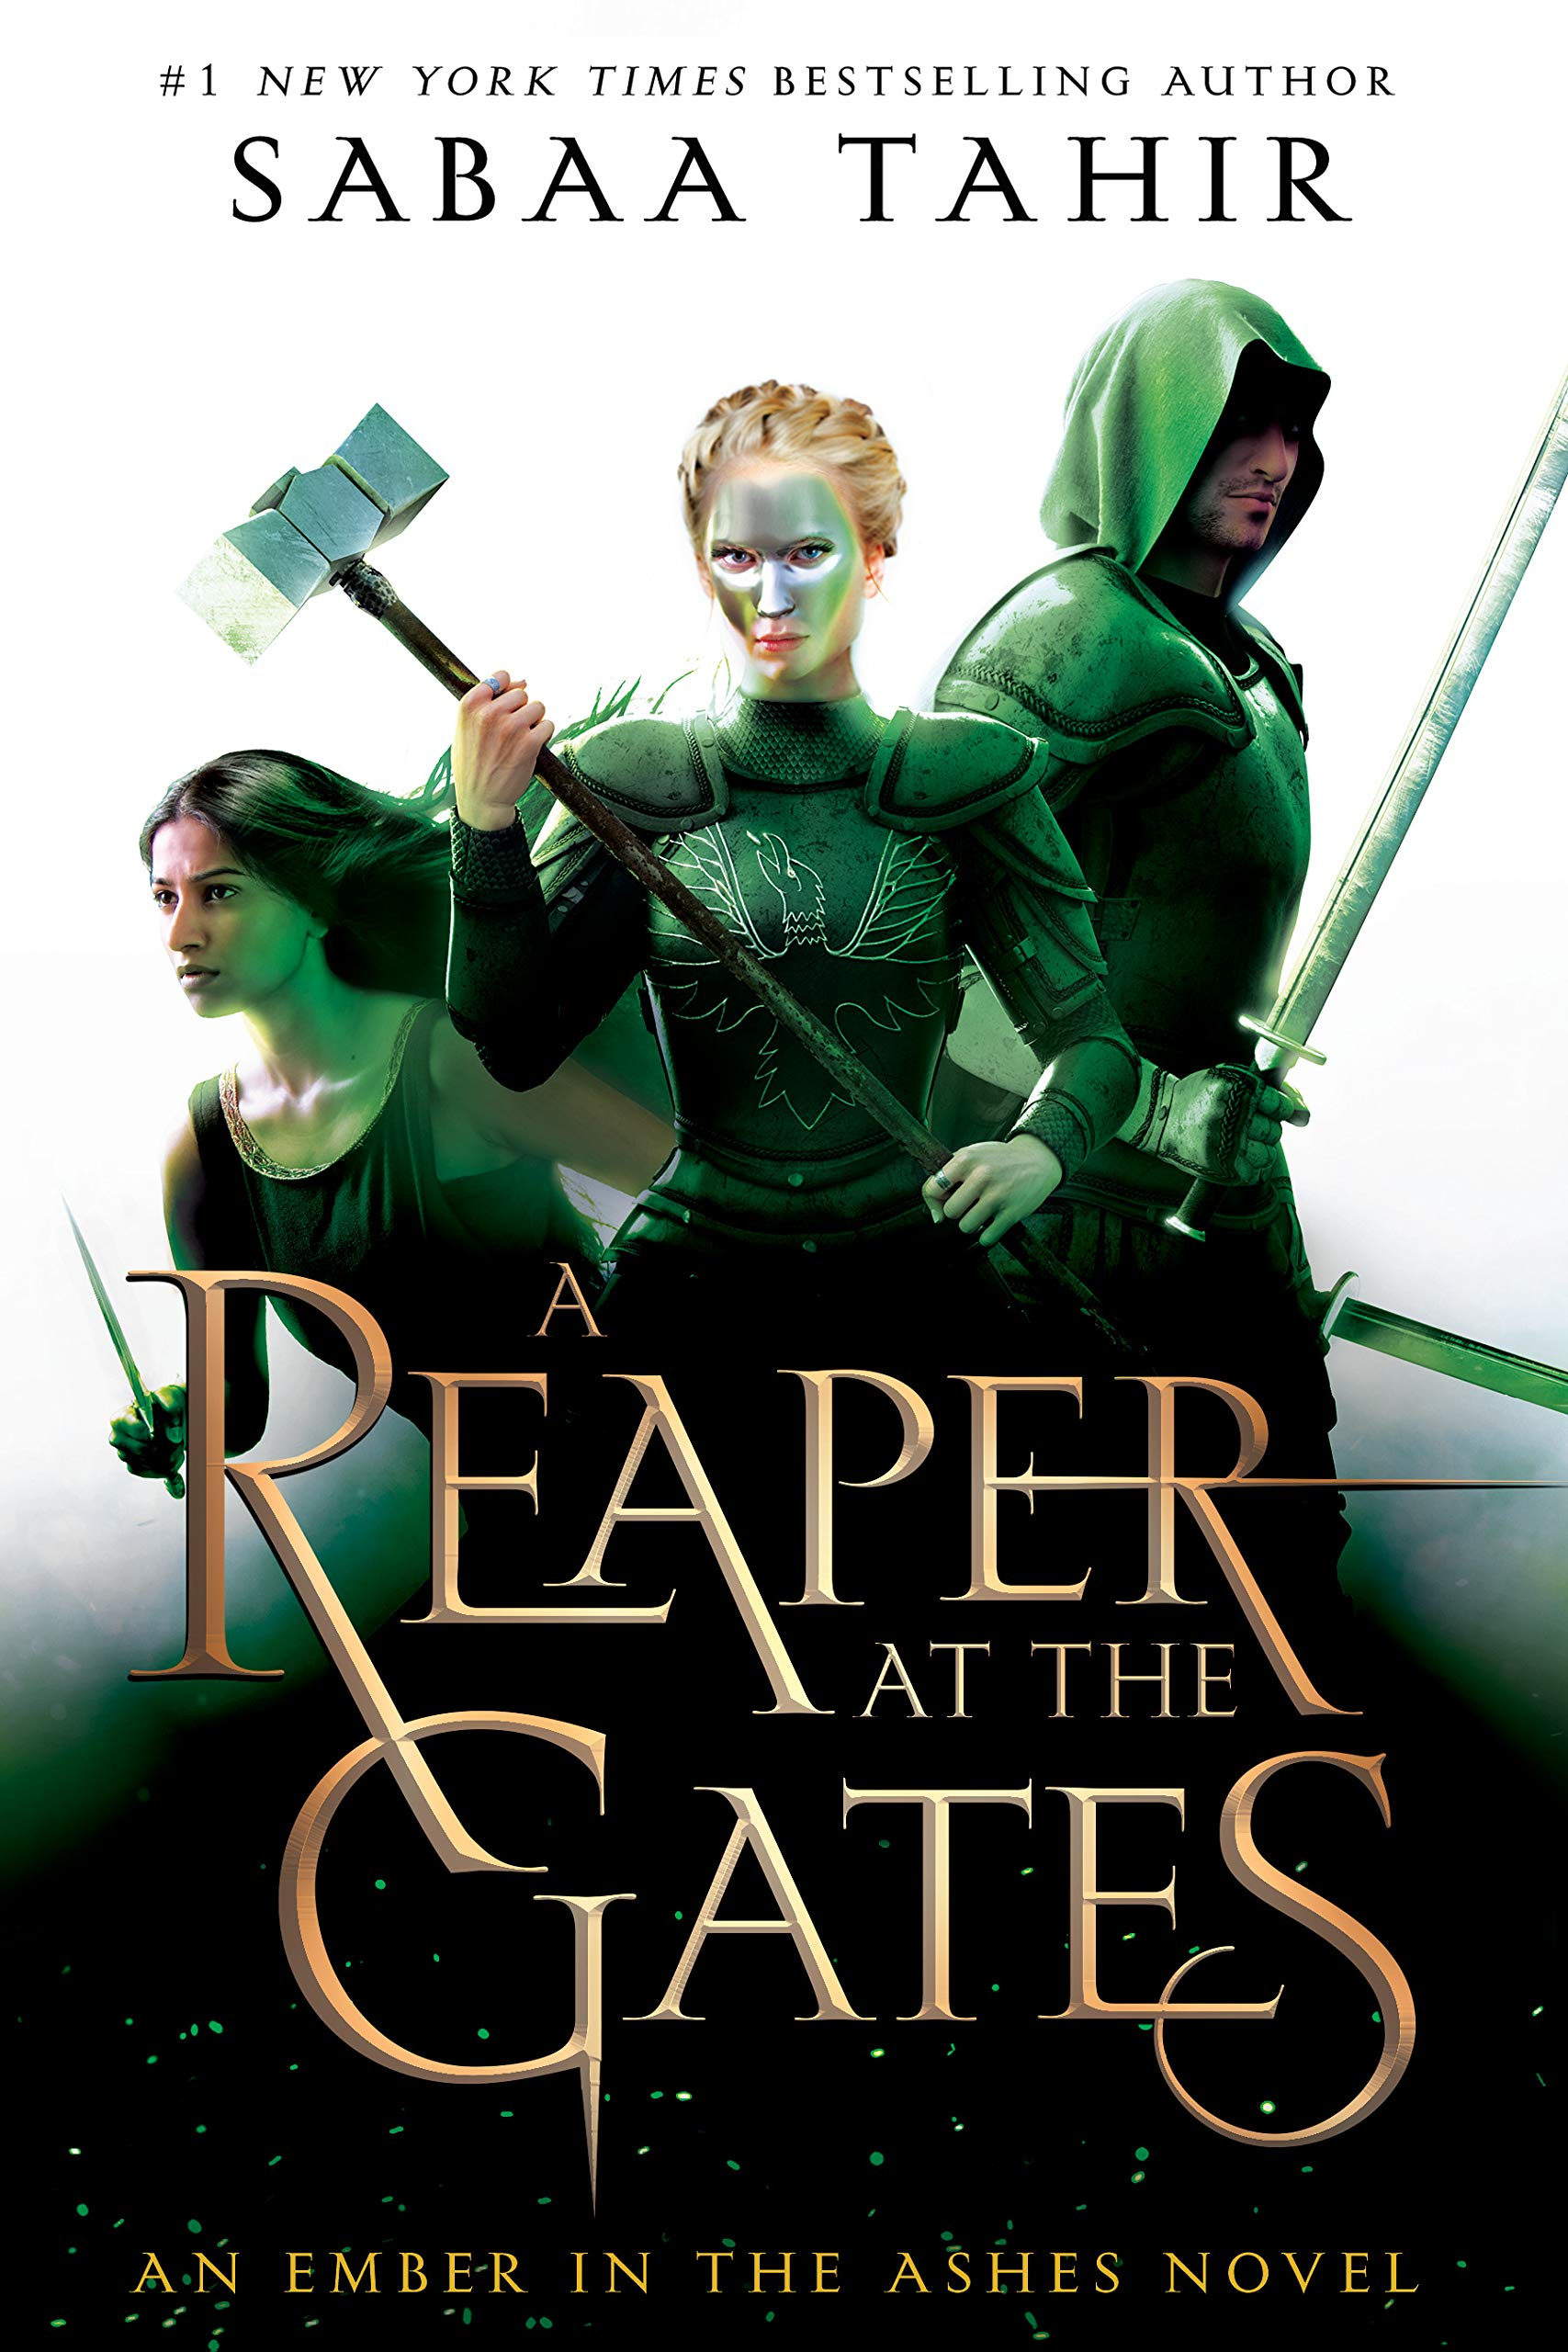 Amazon.com: A Reaper at the Gates (An Ember in the Ashes ...